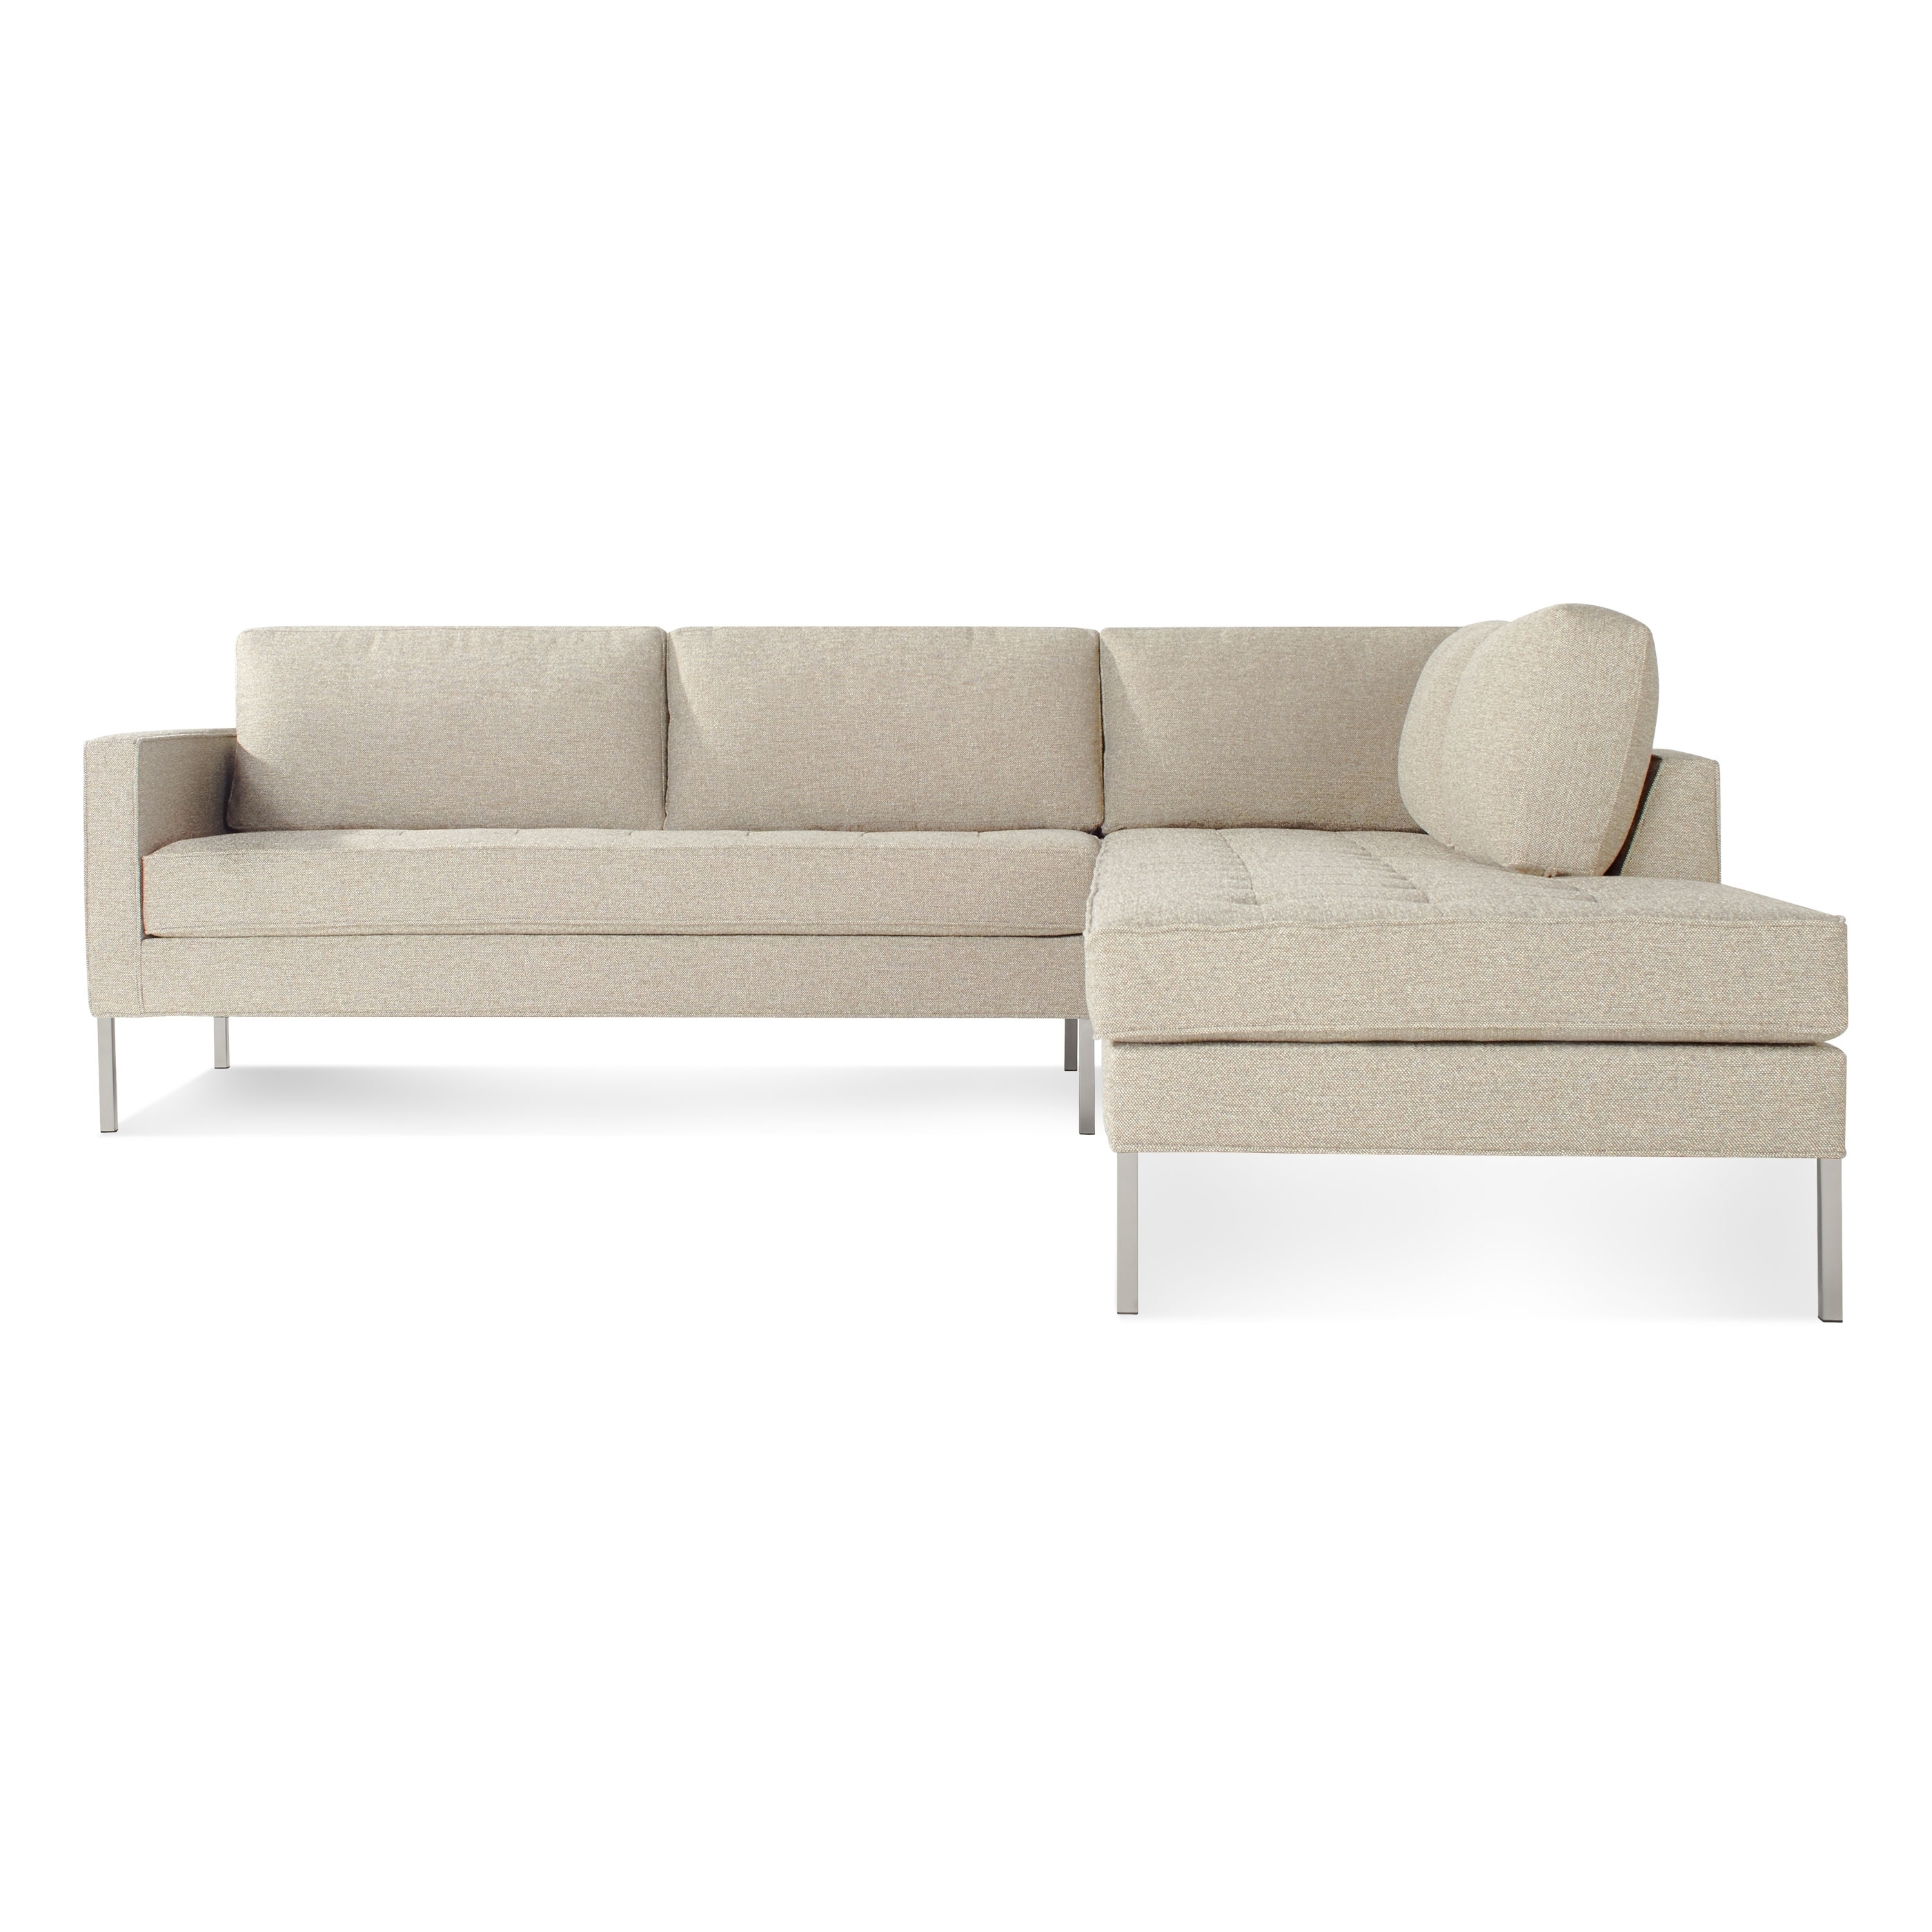 20 Best Collection Of Newfoundland Sectional Sofas Pertaining To Newfoundland Sectional Sofas (View 4 of 10)